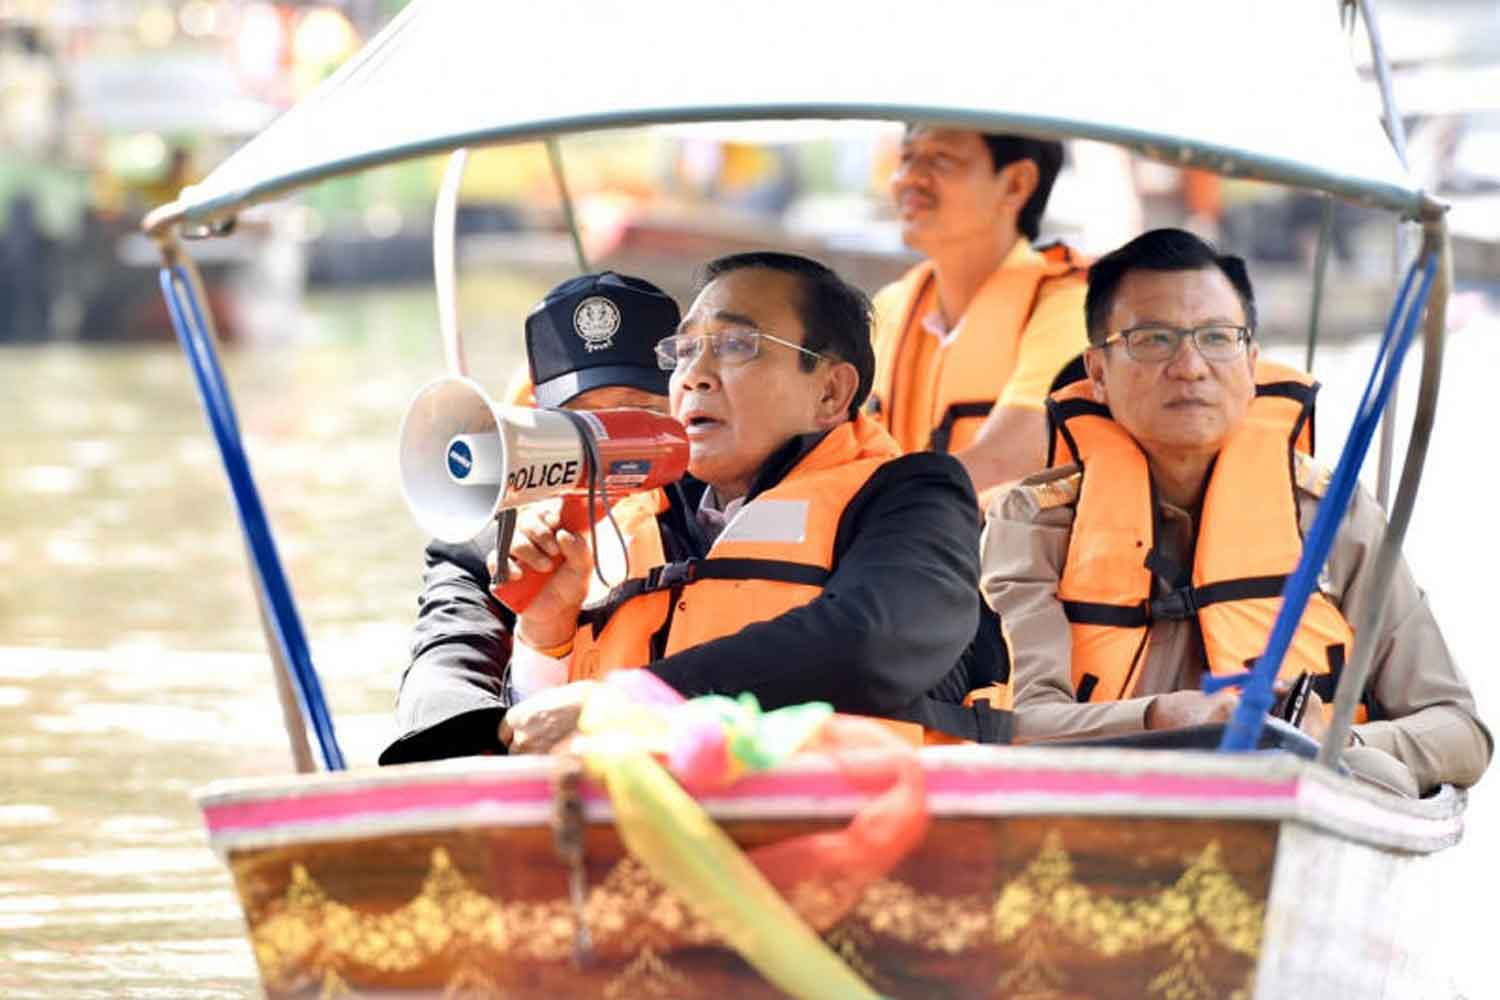 Prime Minister Prayut Chan-o-cha speaks to local residents during his visit to Ratchaburi province on Monday. (Government House photo)